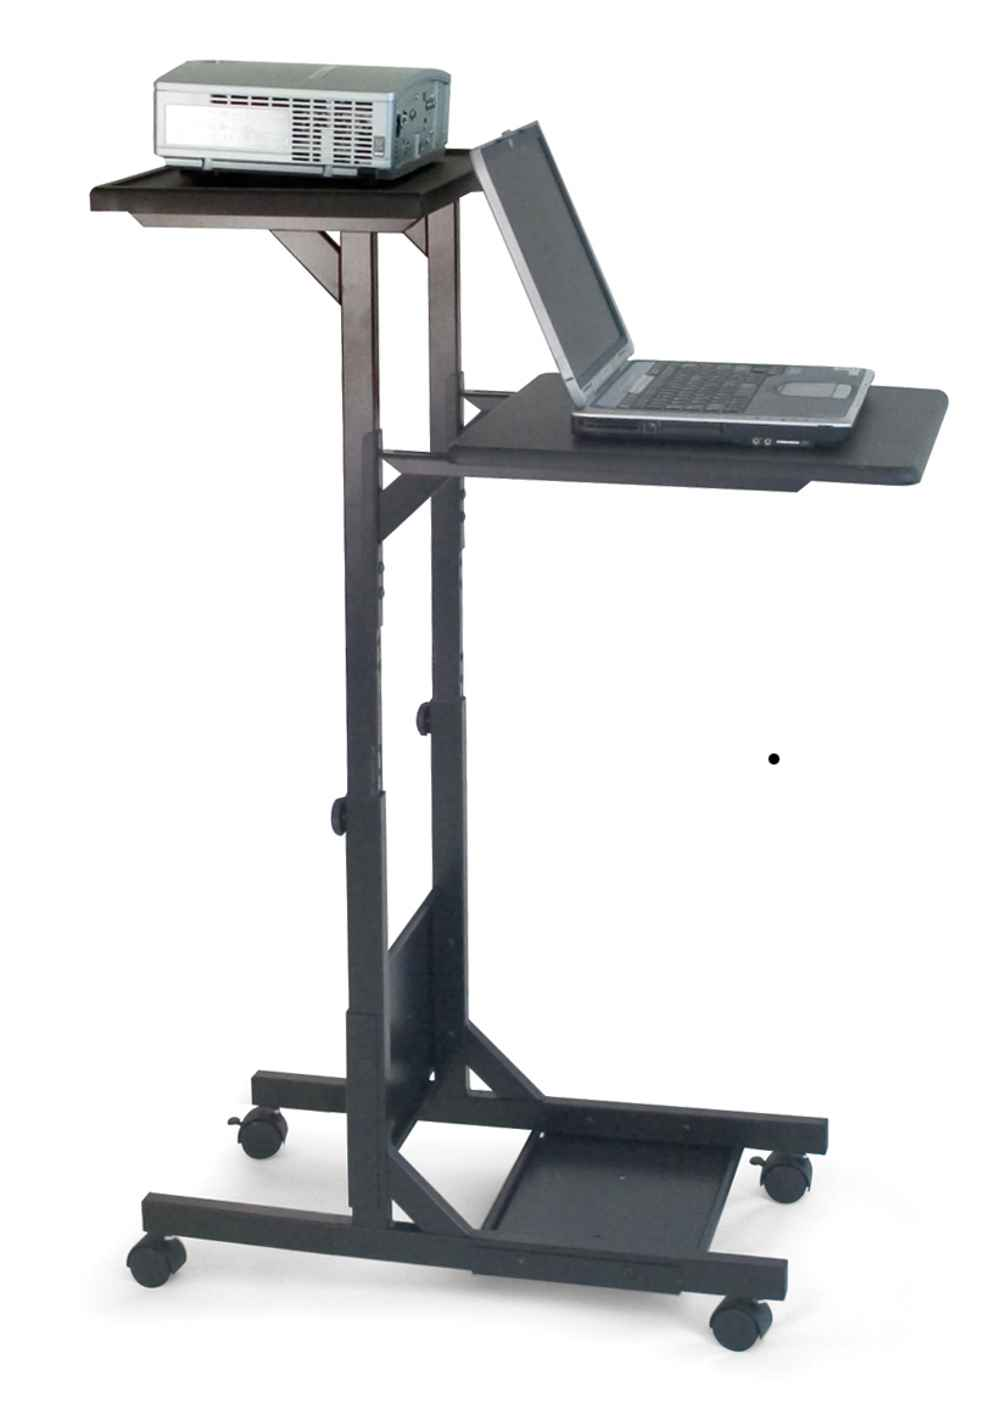 Mobile Laptop Stands Benefits | Office Furniture